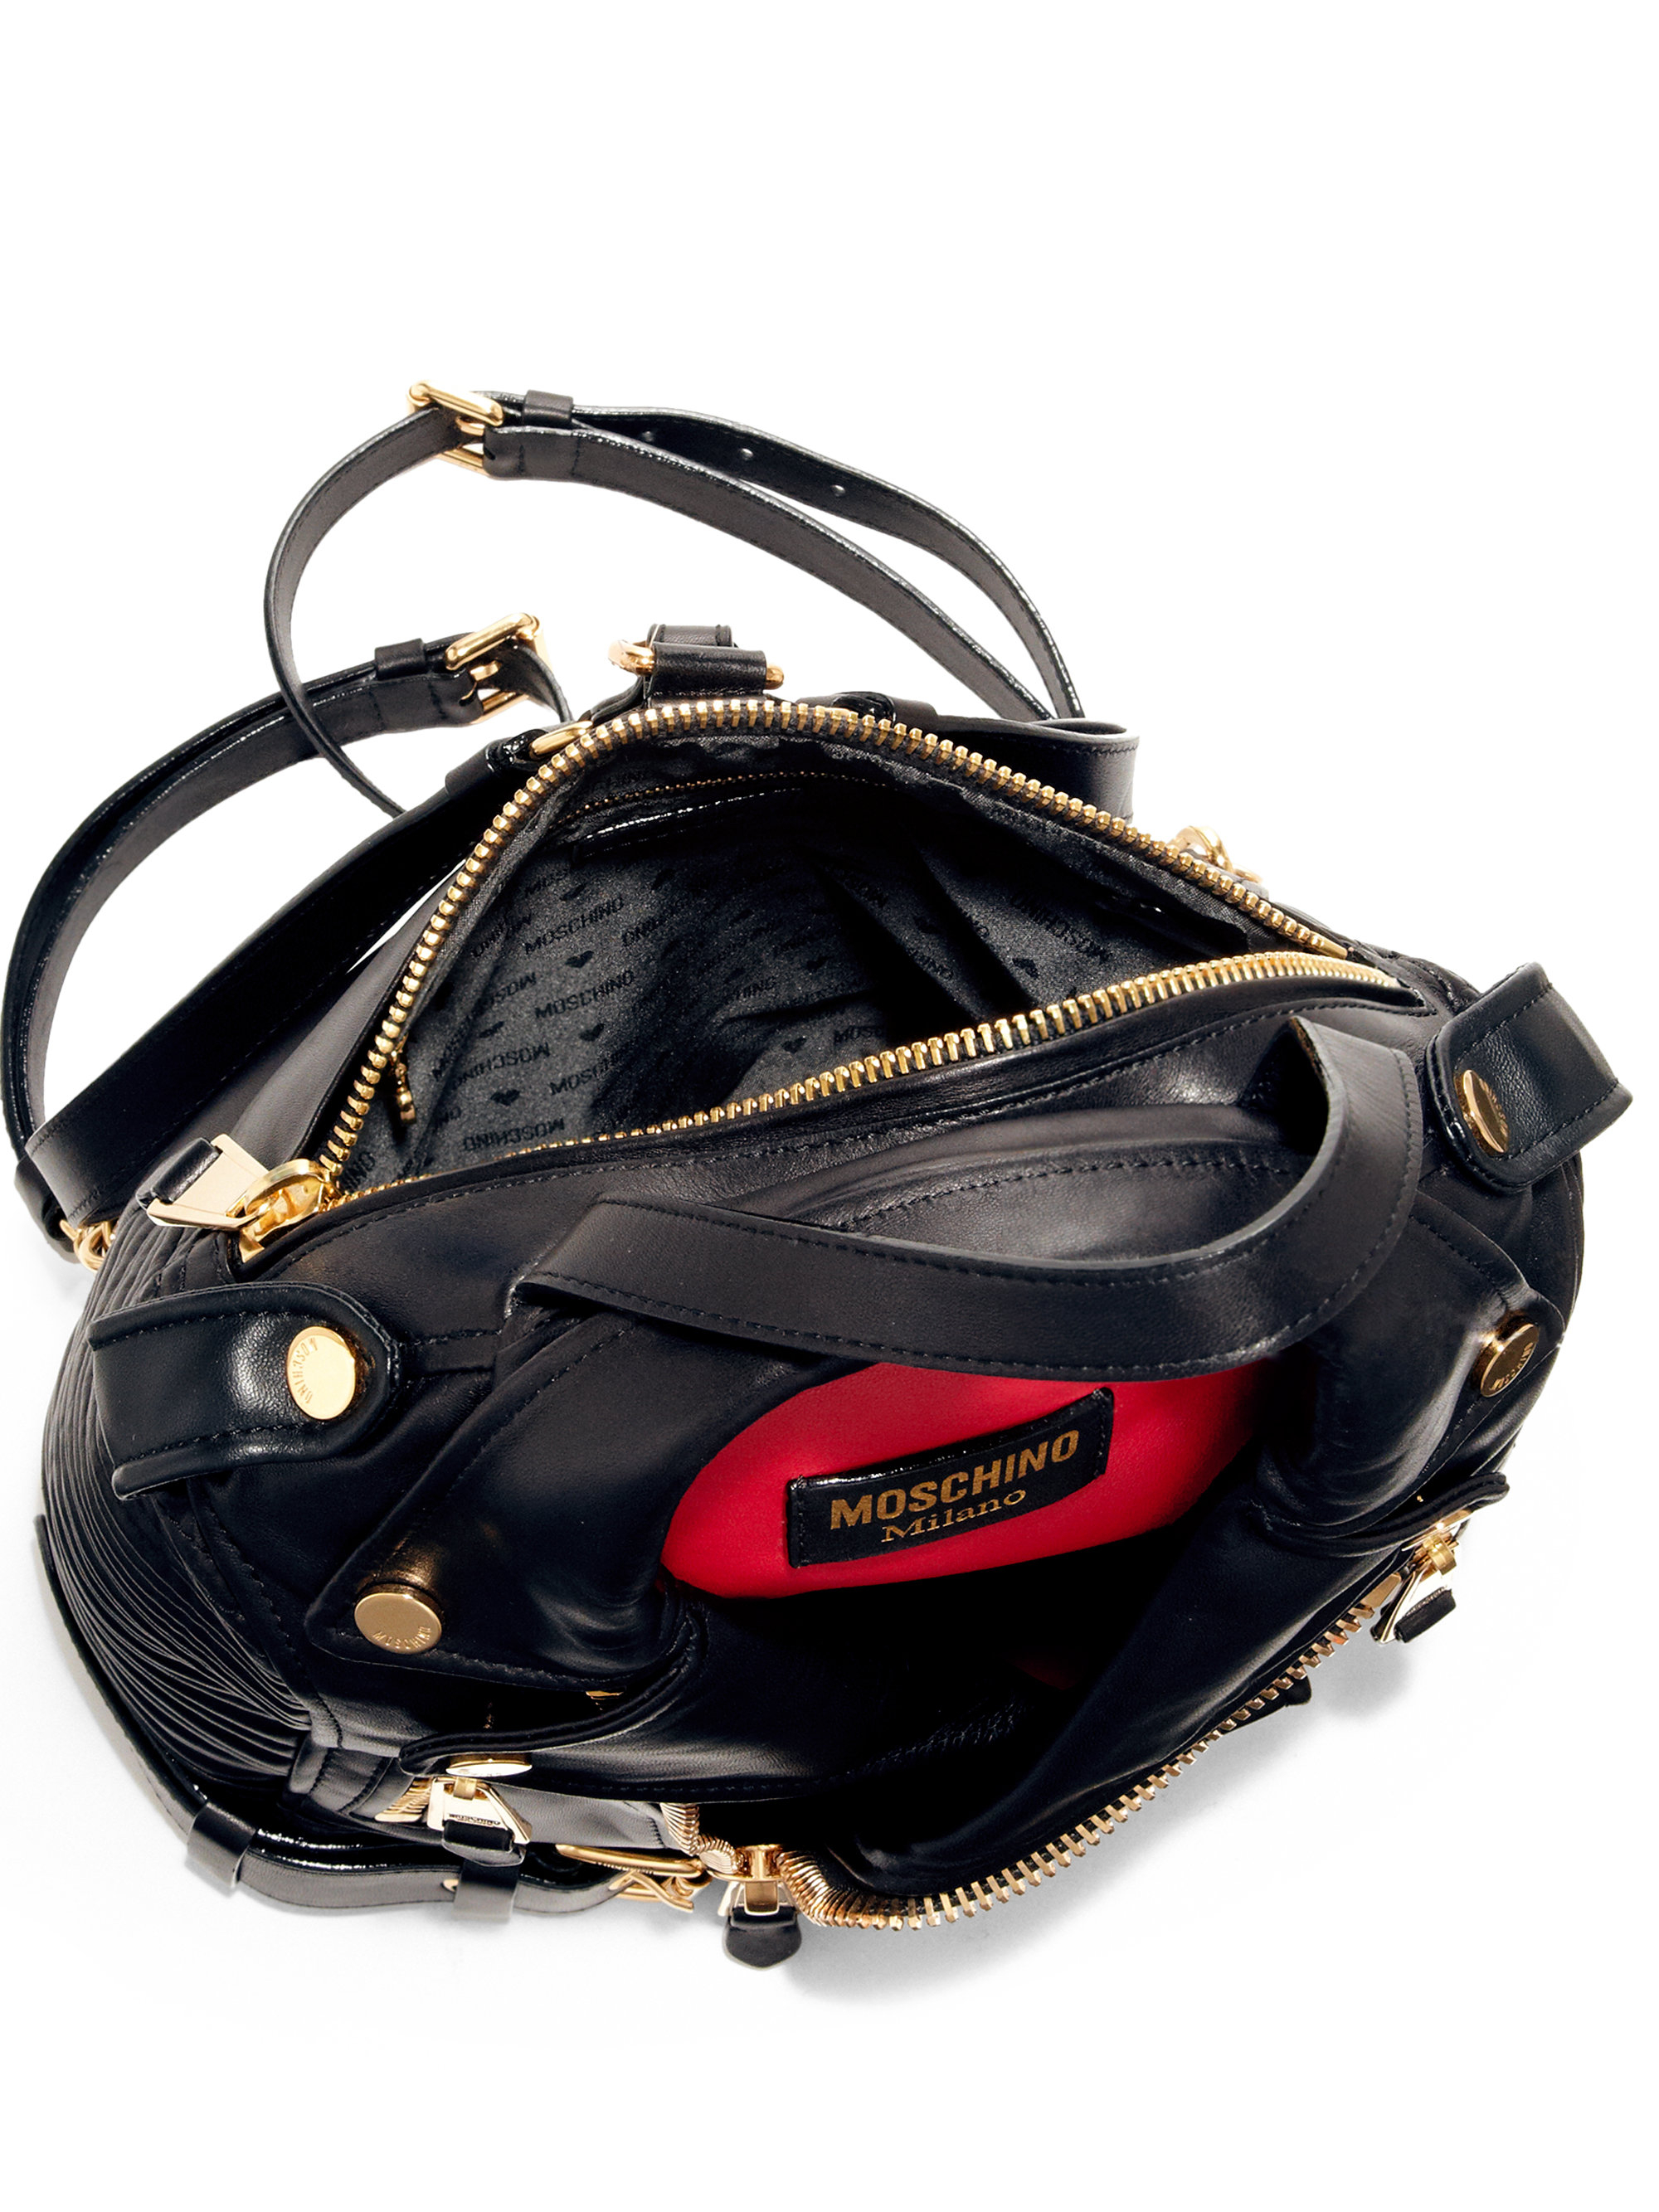 79d3aa0c5d03 Moschino Leather Jacket Backpack in Black - Lyst